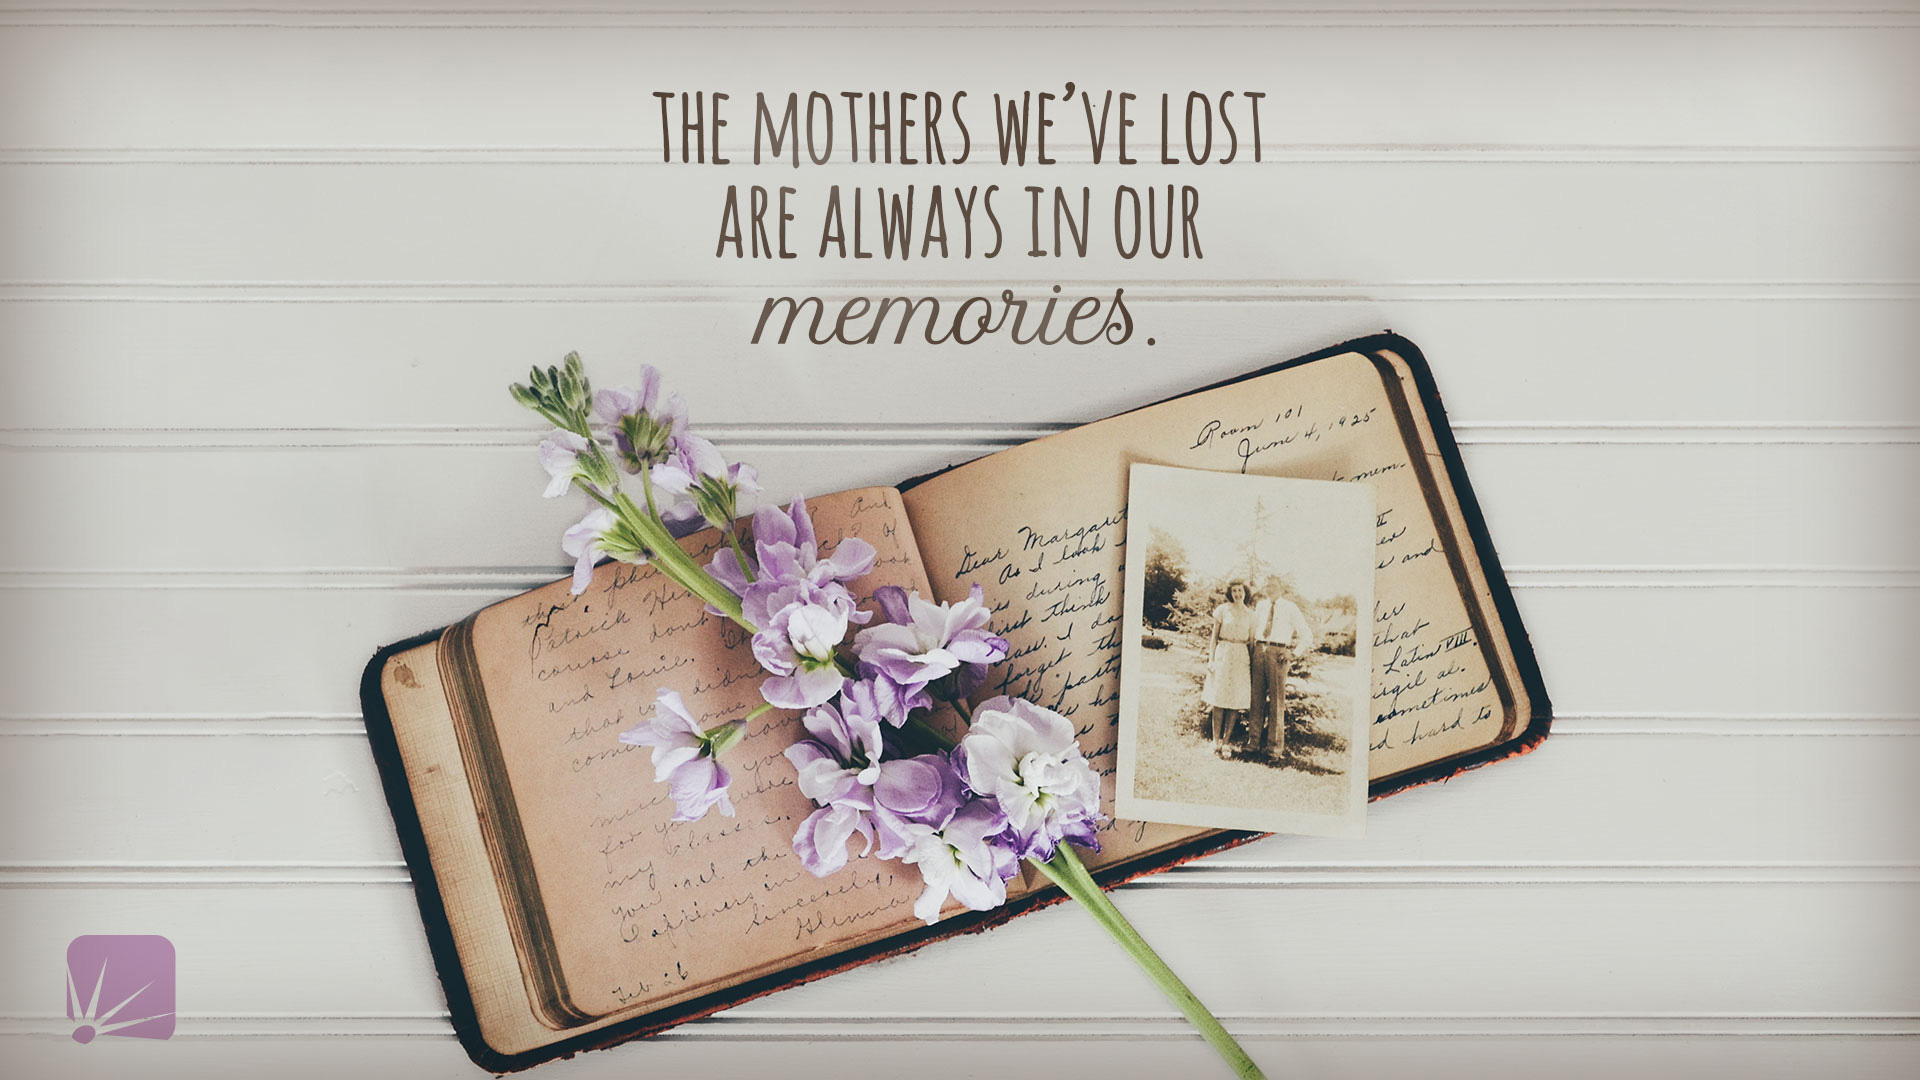 The mother's we've lost are always in our memories.